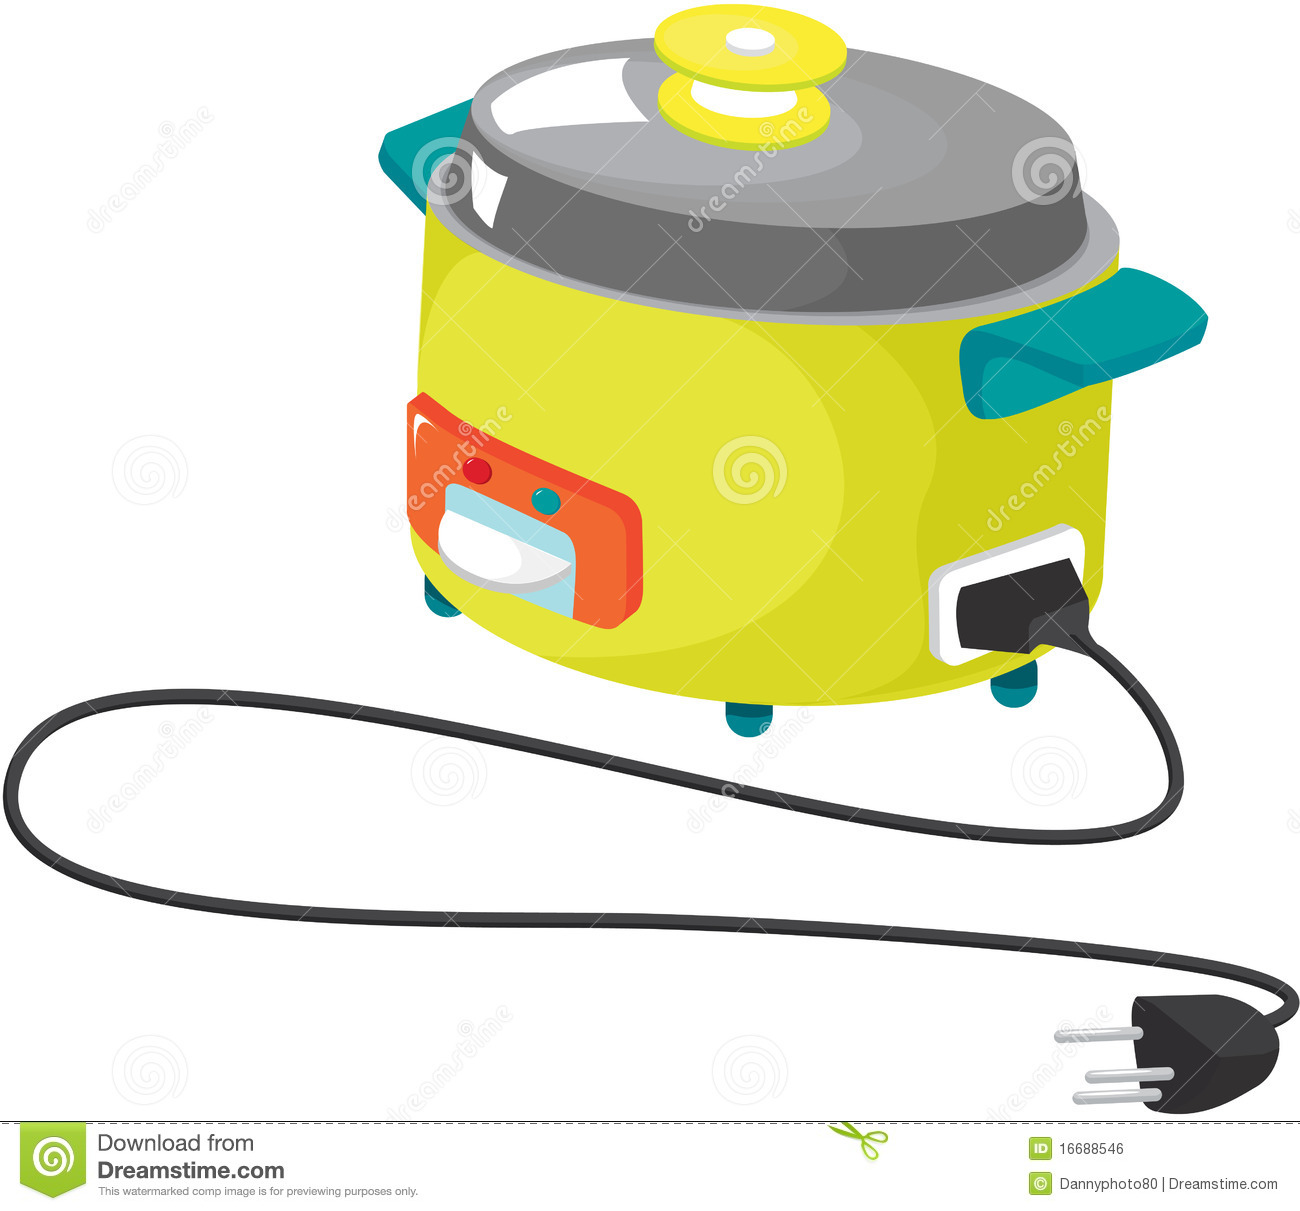 Kitchen Appliances Clip Art ~ Kitchen appliances royalty free stock image